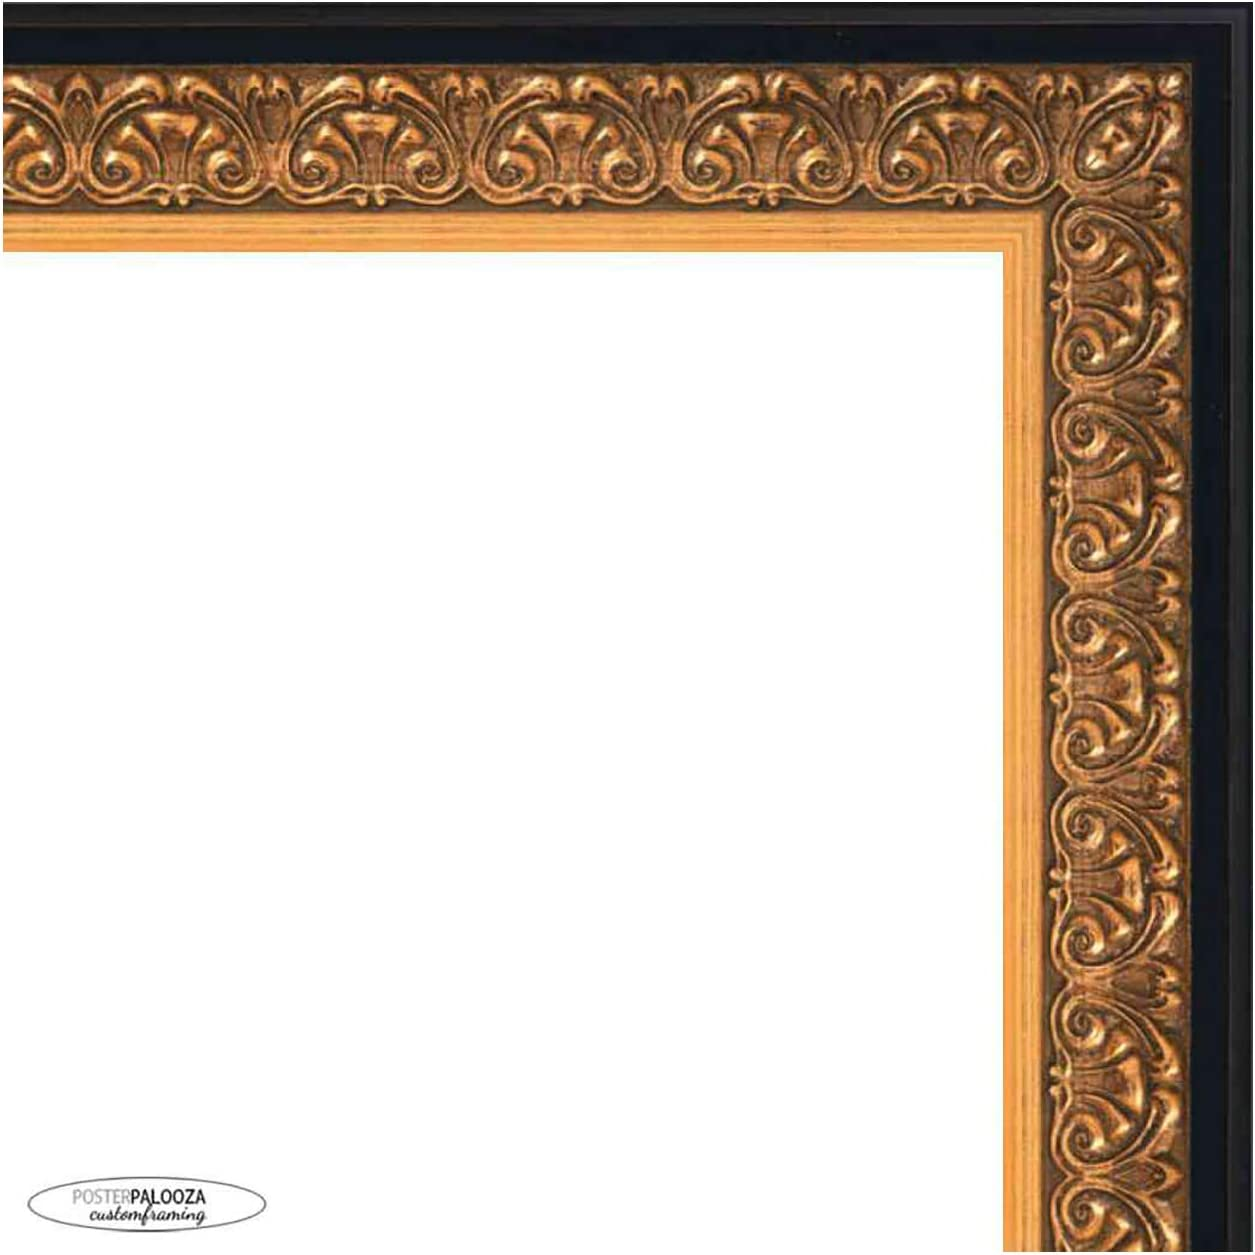 Poster Palooza 20x18 Under blast sales Ornate Gold Complete Picture Indianapolis Mall Frame wit Wood